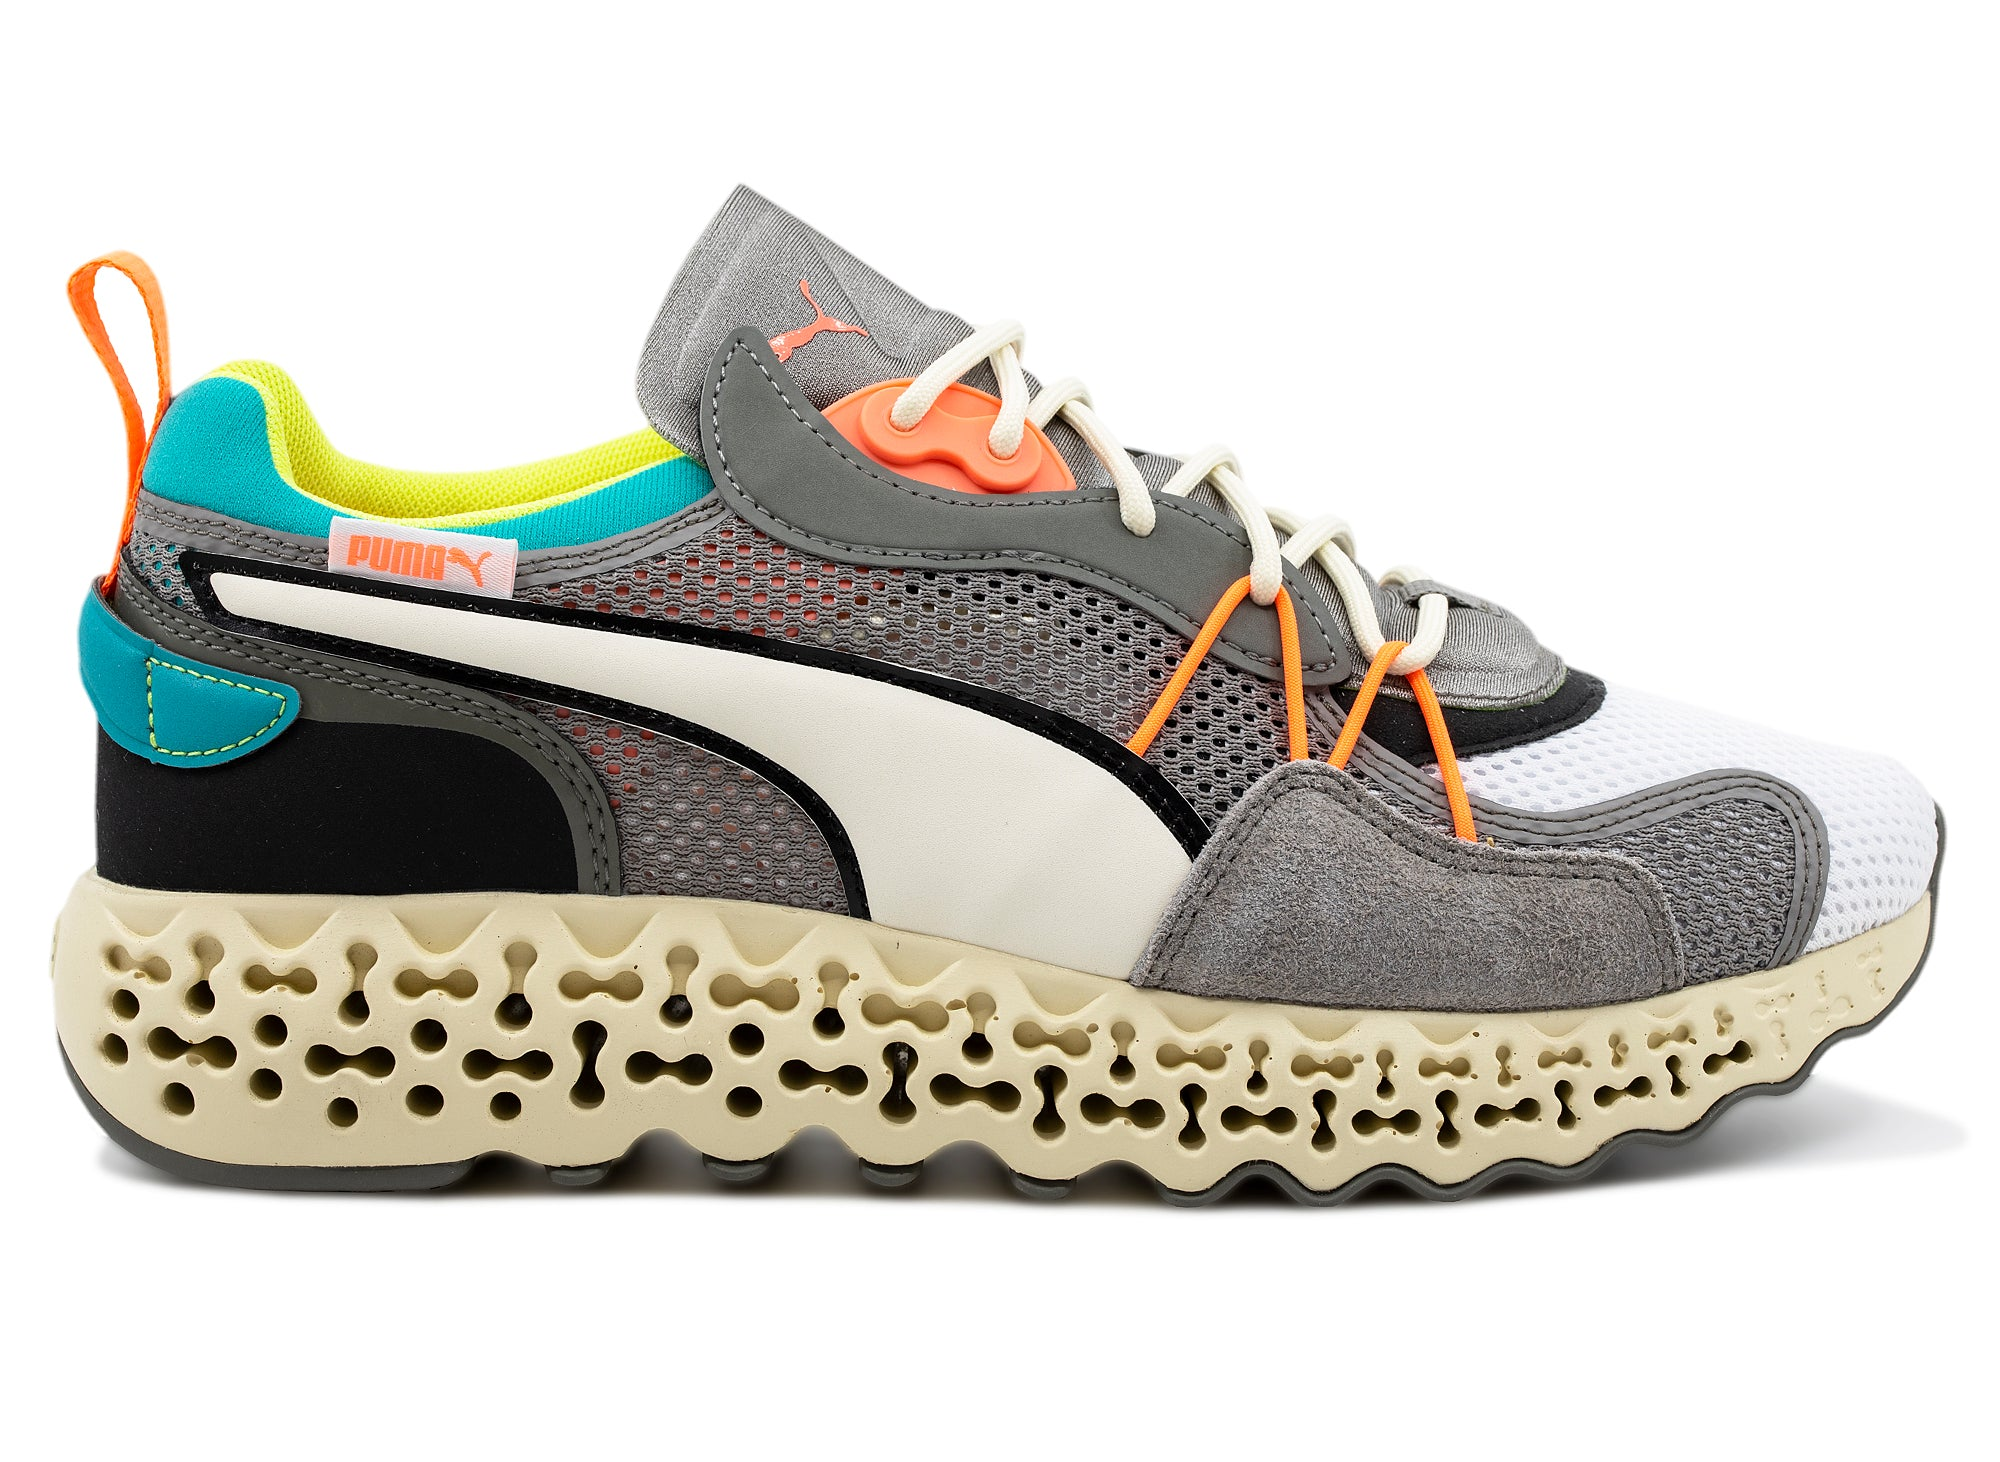 Puma Calibrate Restored Sneakers xld